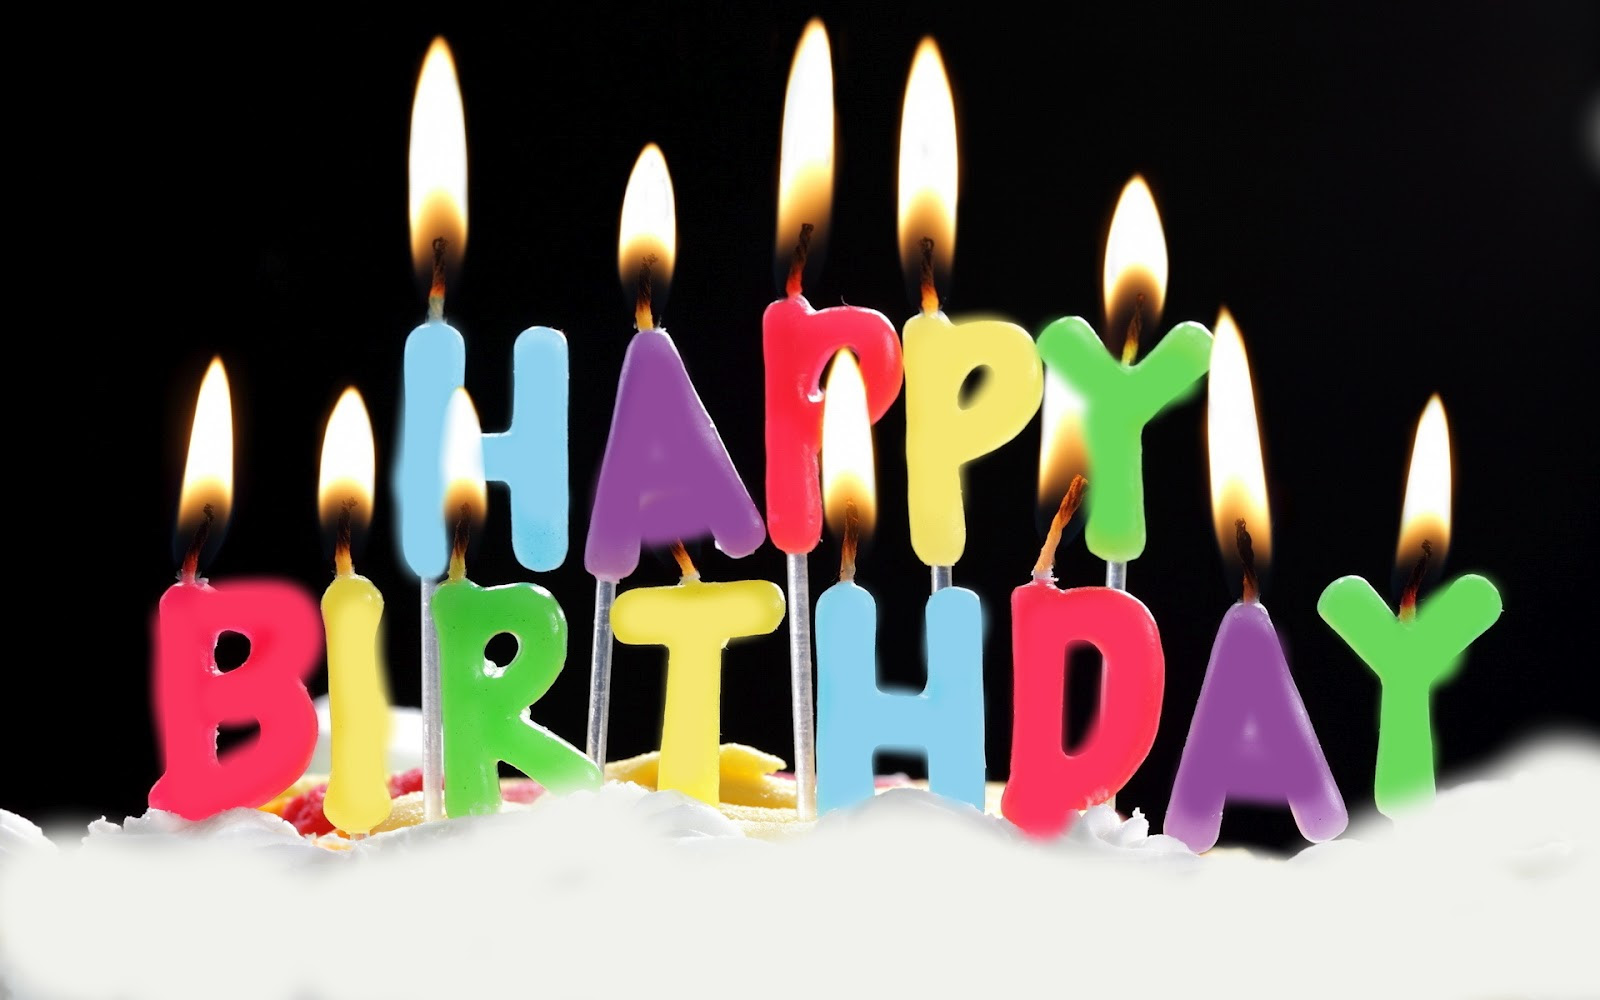 Happy Birthday Images Happy Birthday Candles Images Free